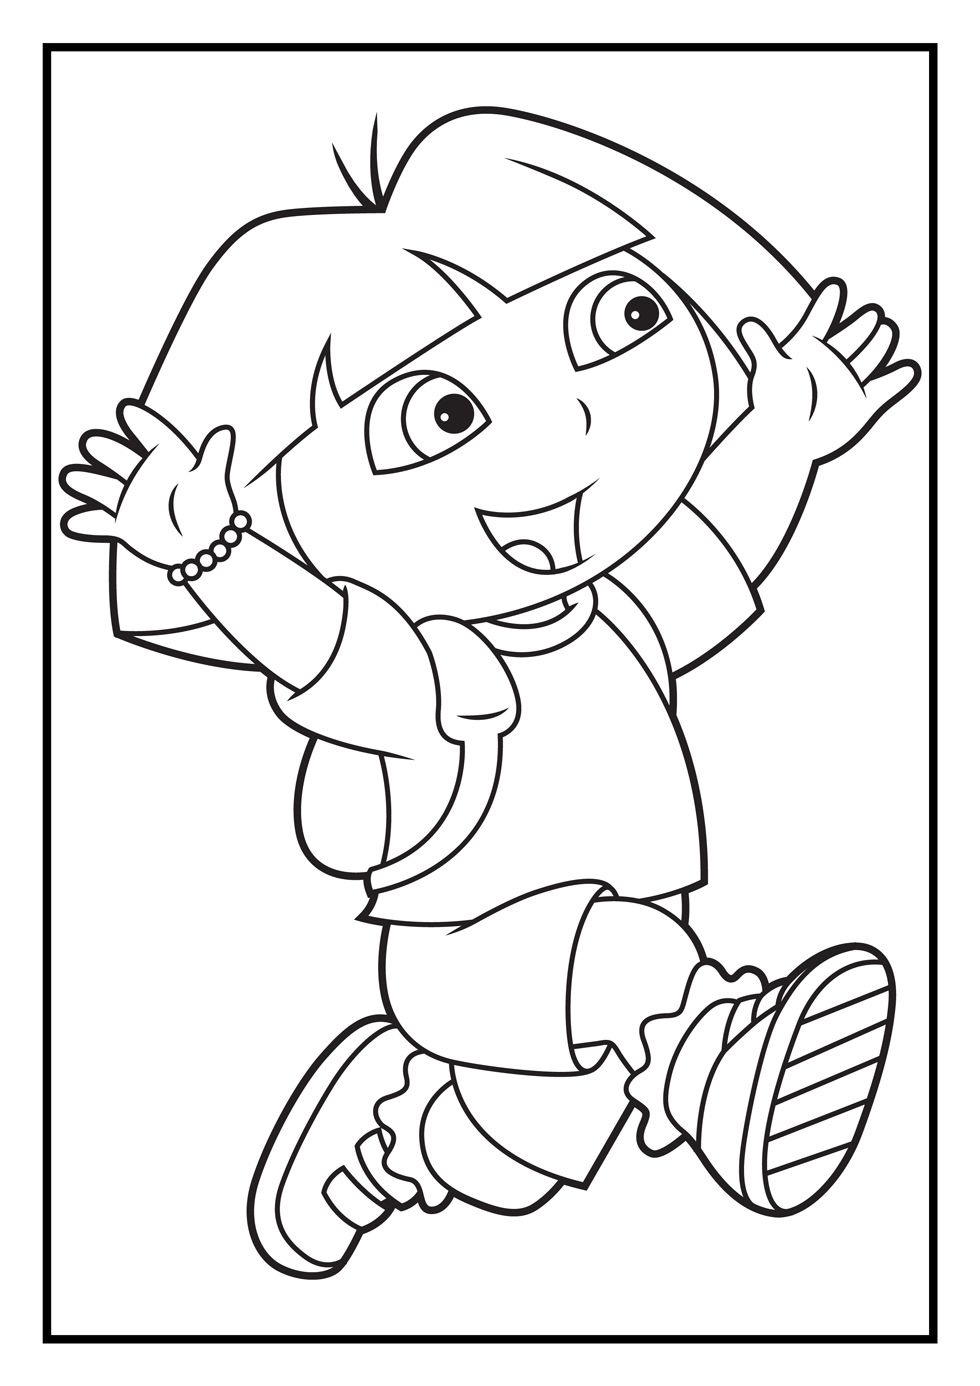 stunning dora coloring pages to print out according awesome article - Dora The Explorer Pictures To Color And Print